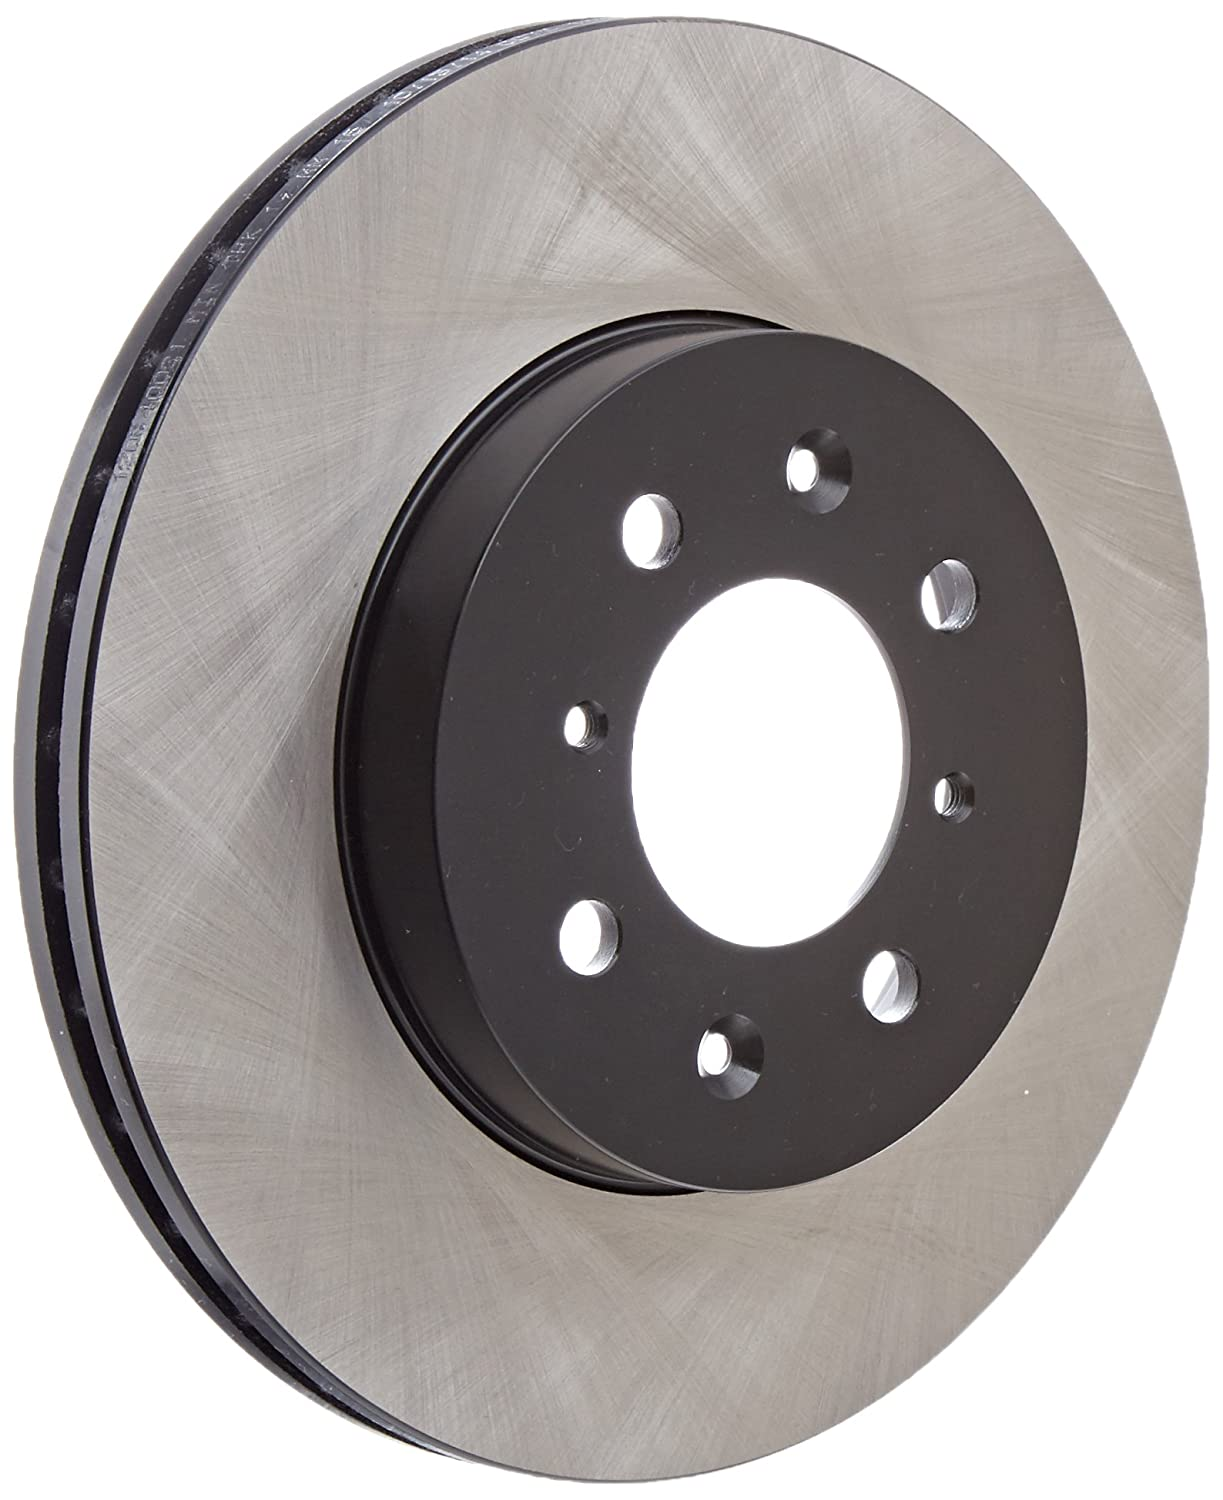 Centric Parts 120.40021 Premium Brake Rotor with E-Coating